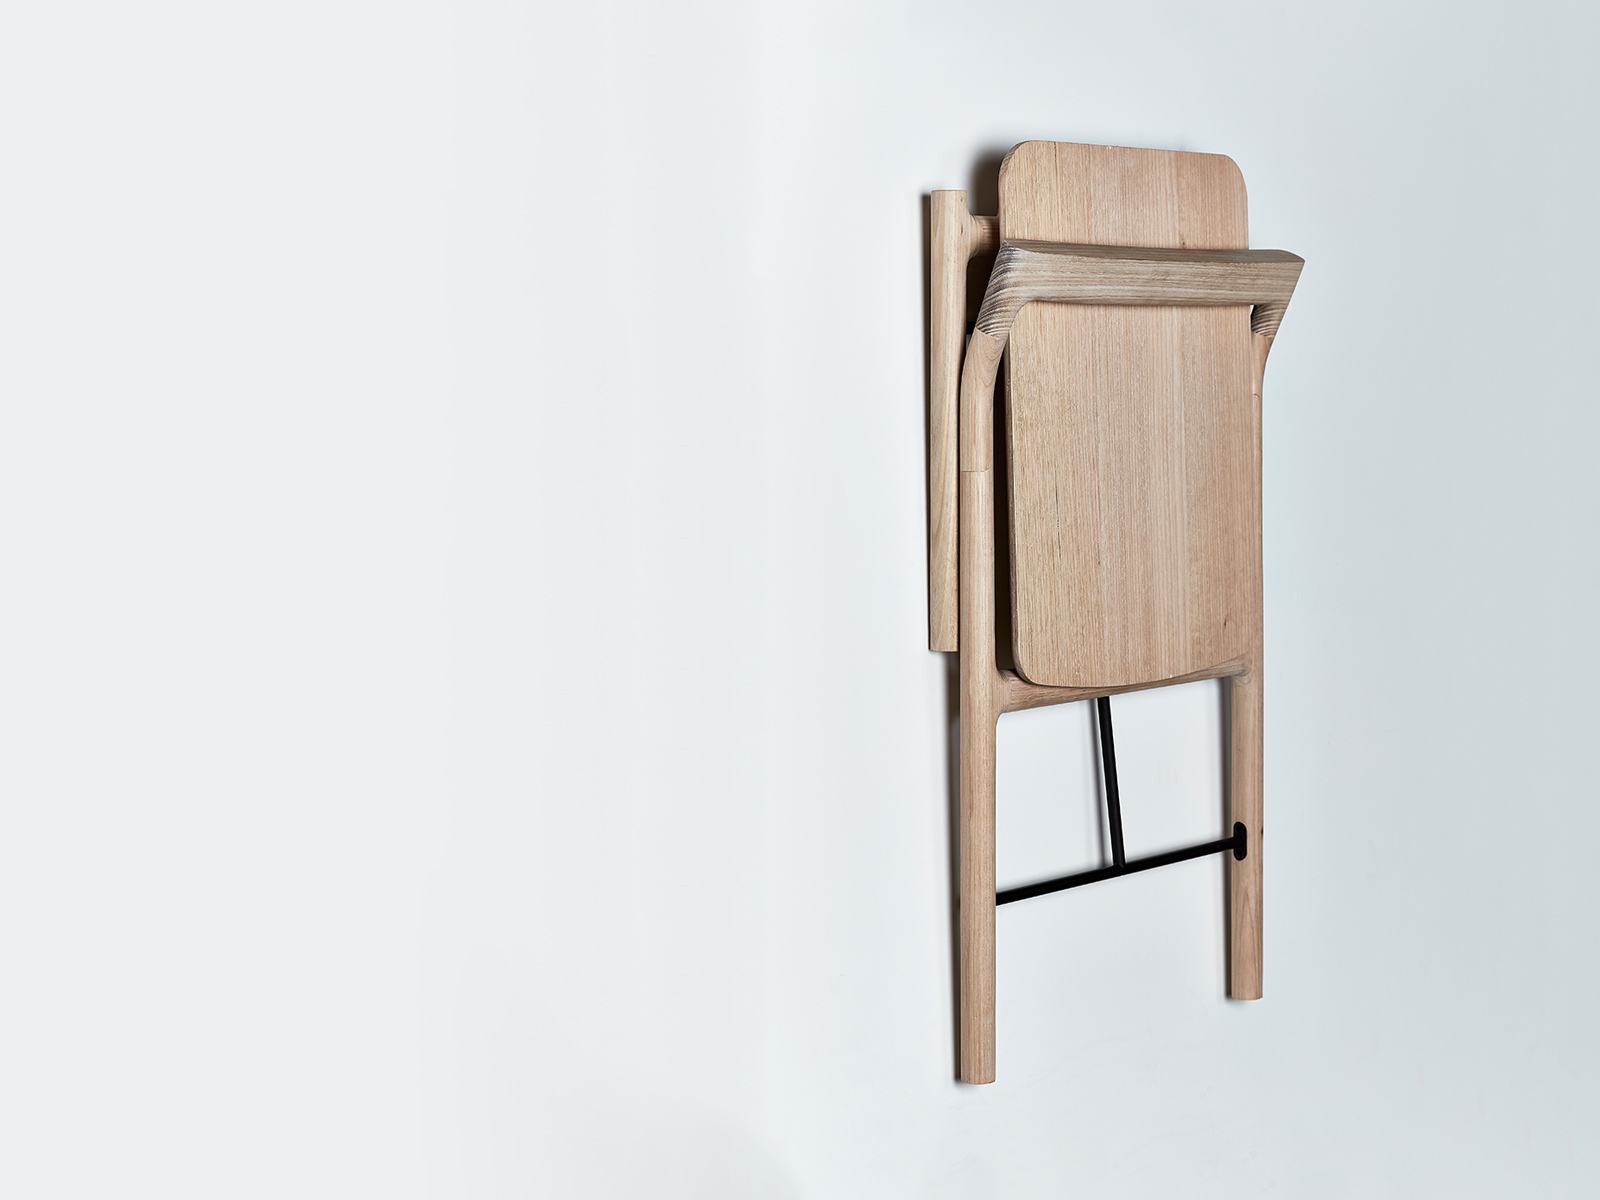 Hup Hup Chair-Skeehan-The Local Project-Australian Architecture & Design-Image 3